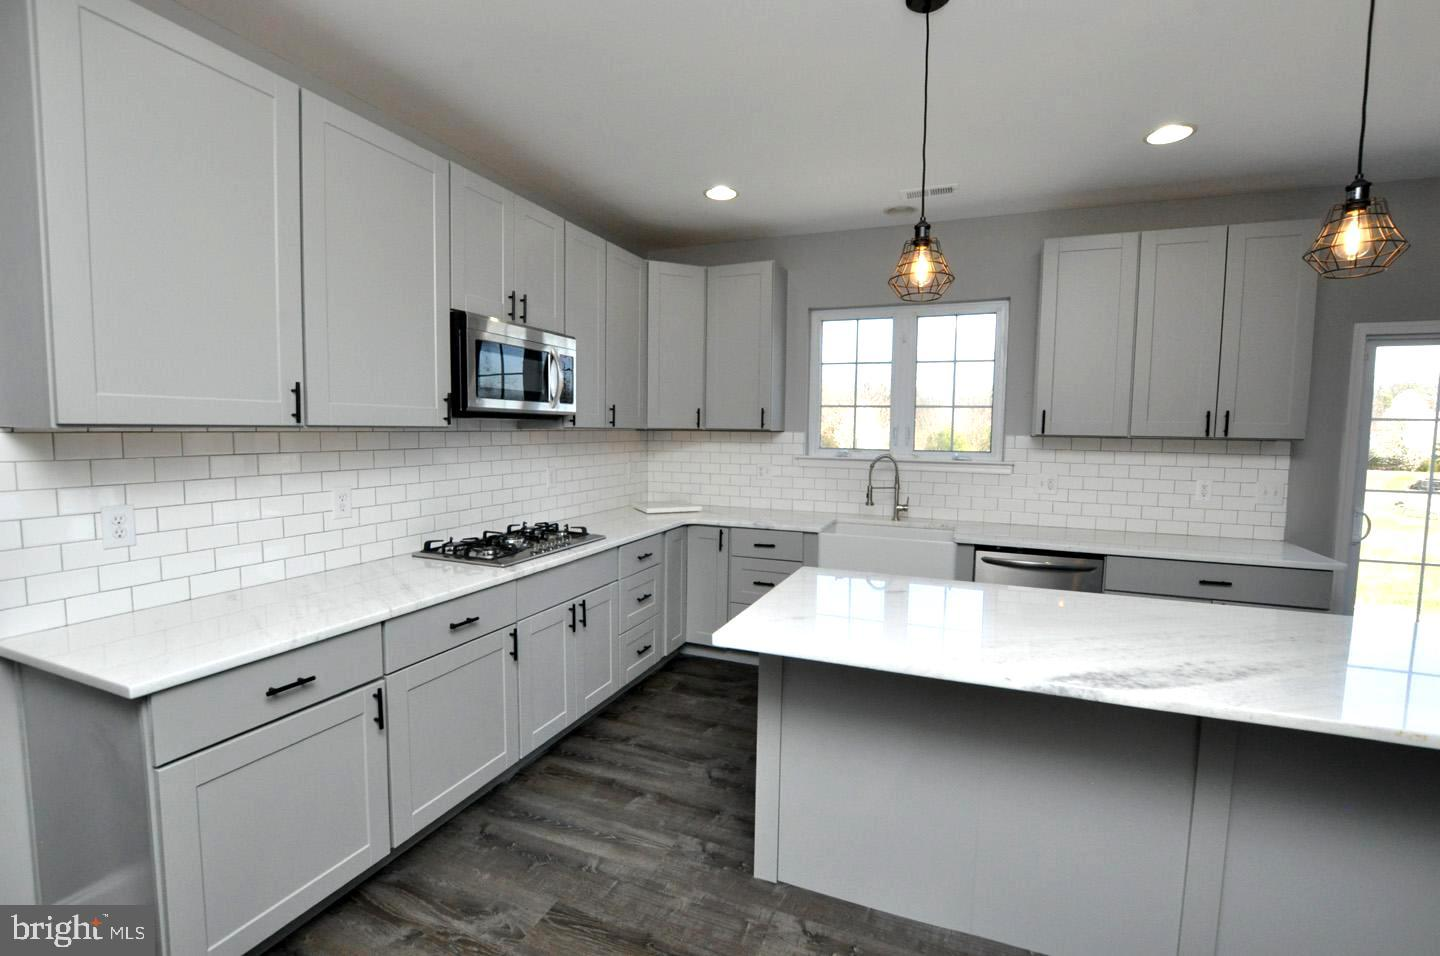 Shaker cabinets, farmhouse sink, subway tile